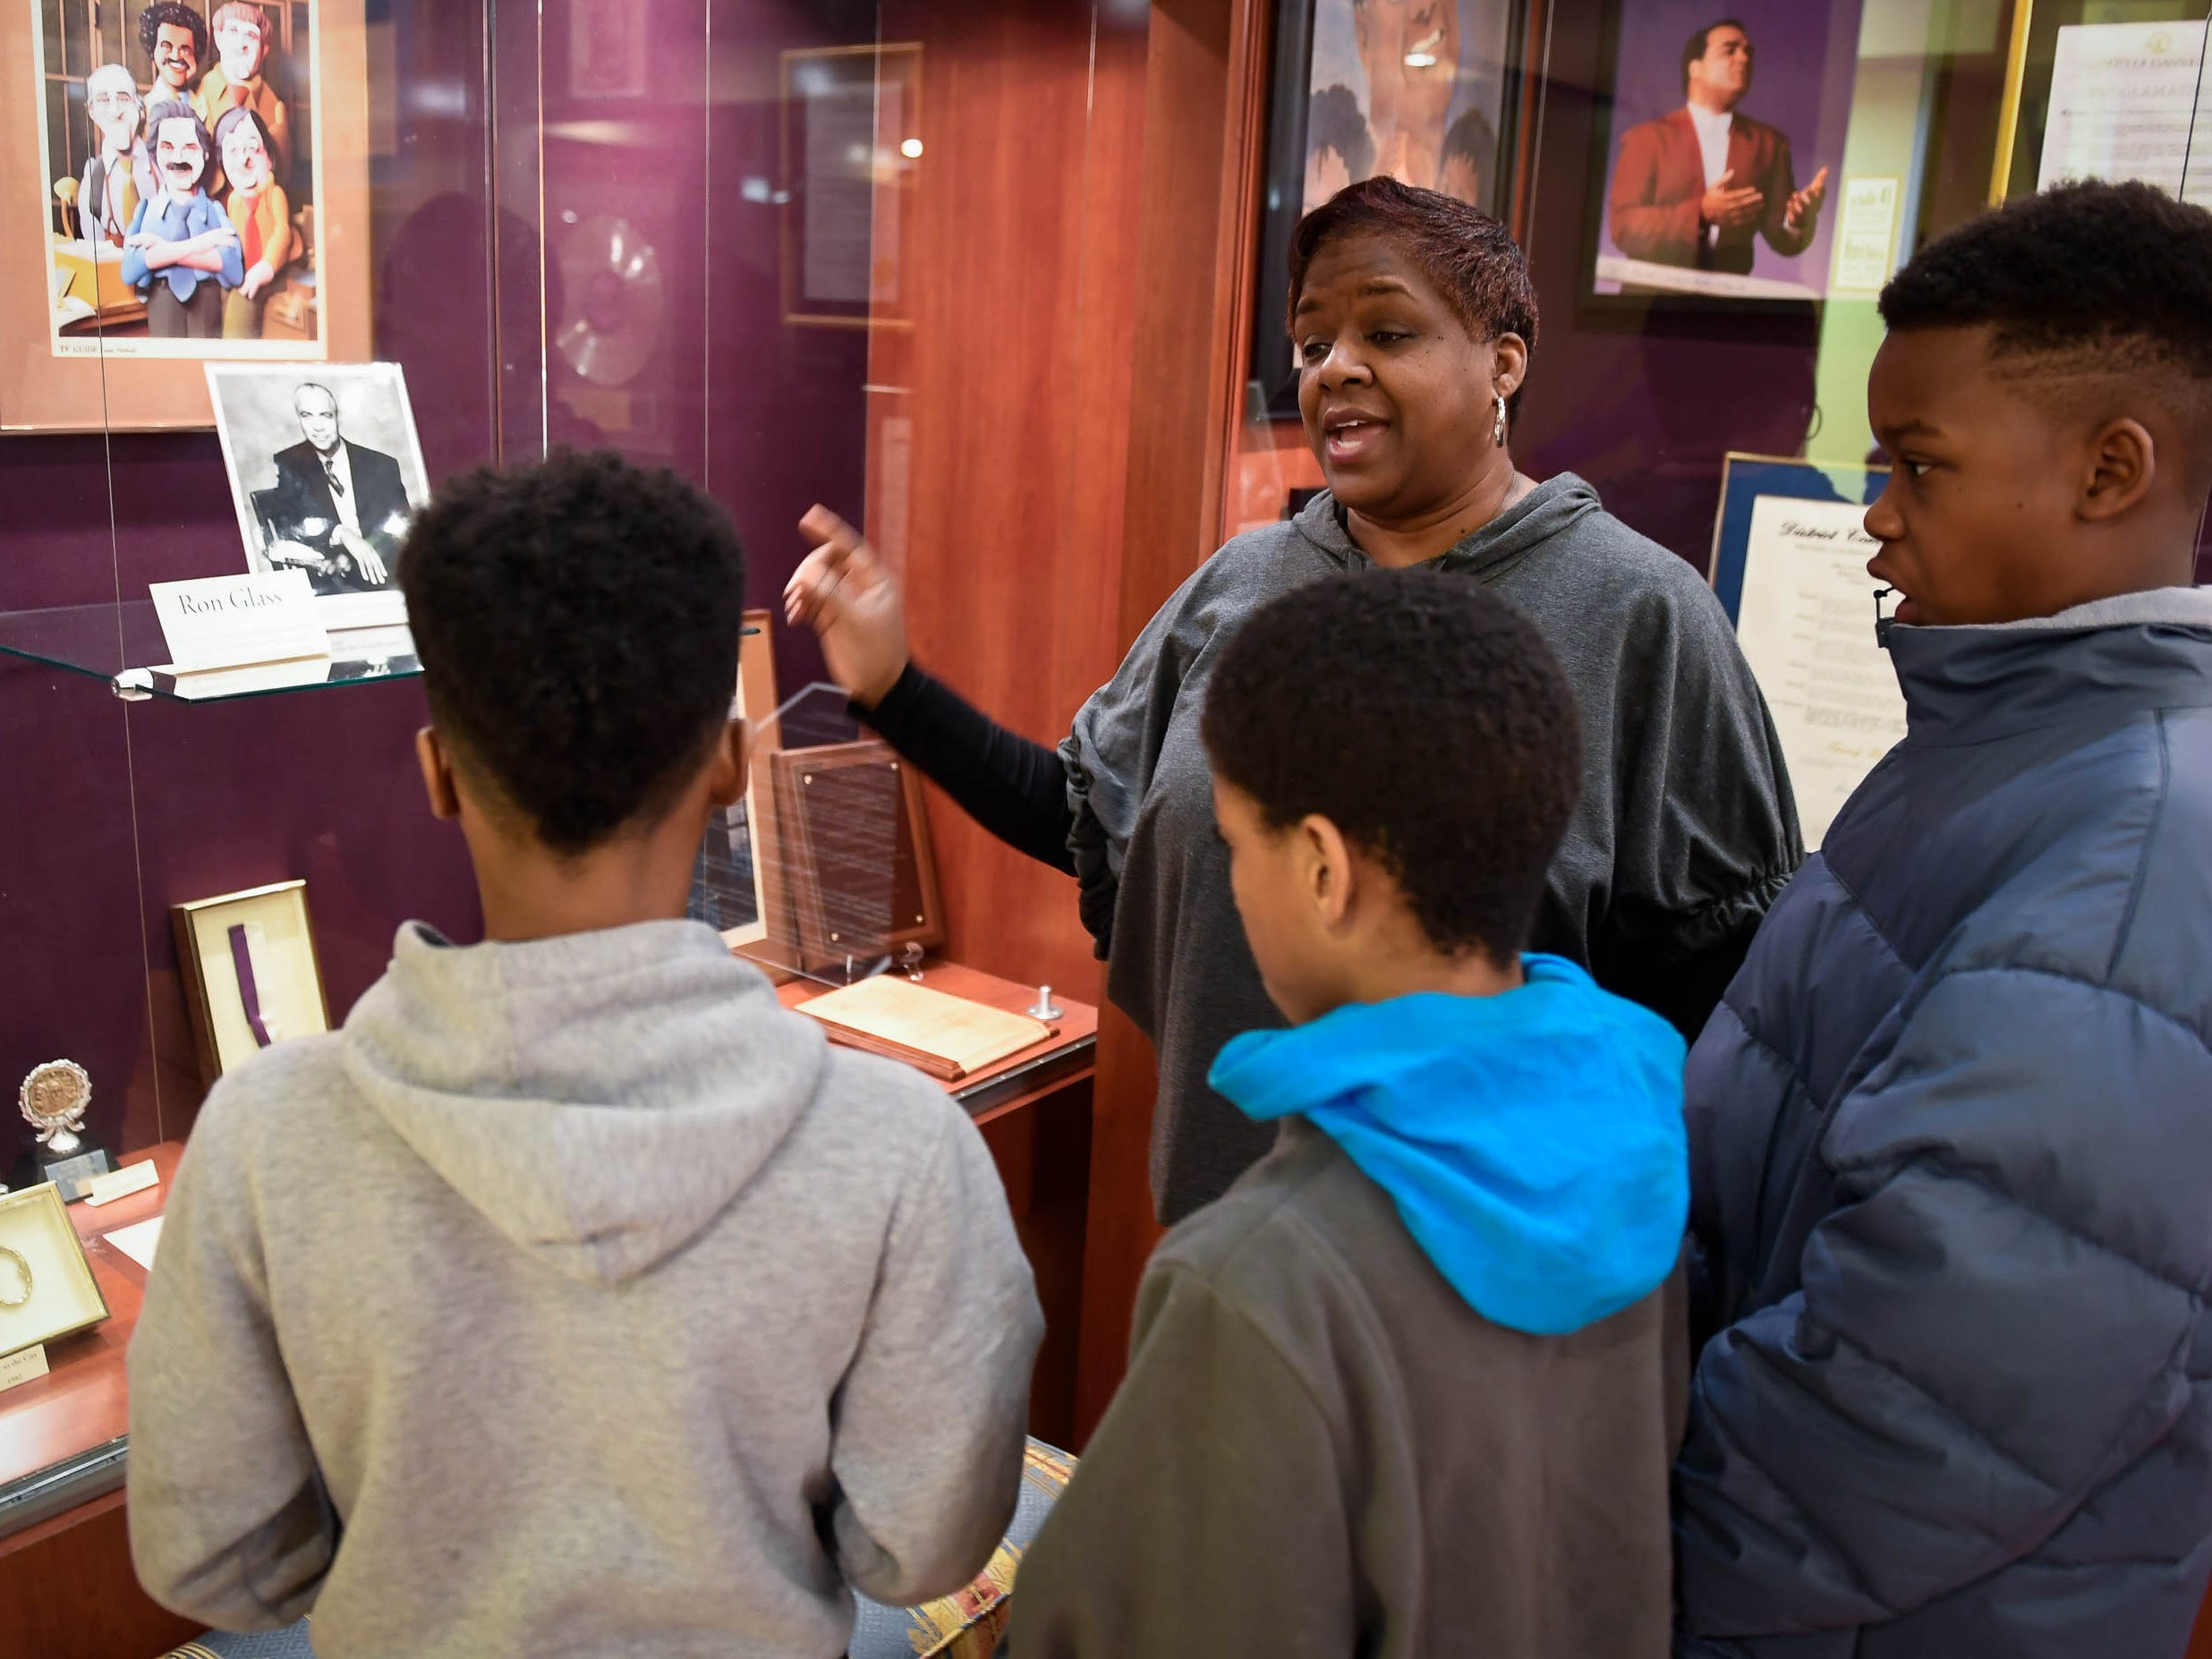 Dexter Elementary teacher, Lynne Farmer, talks about a display on University of Evansville graduate and television personality Ron Glass during a tour by the school's fifth graders of the Evansville African American Museum Friday, February 15, 2019.